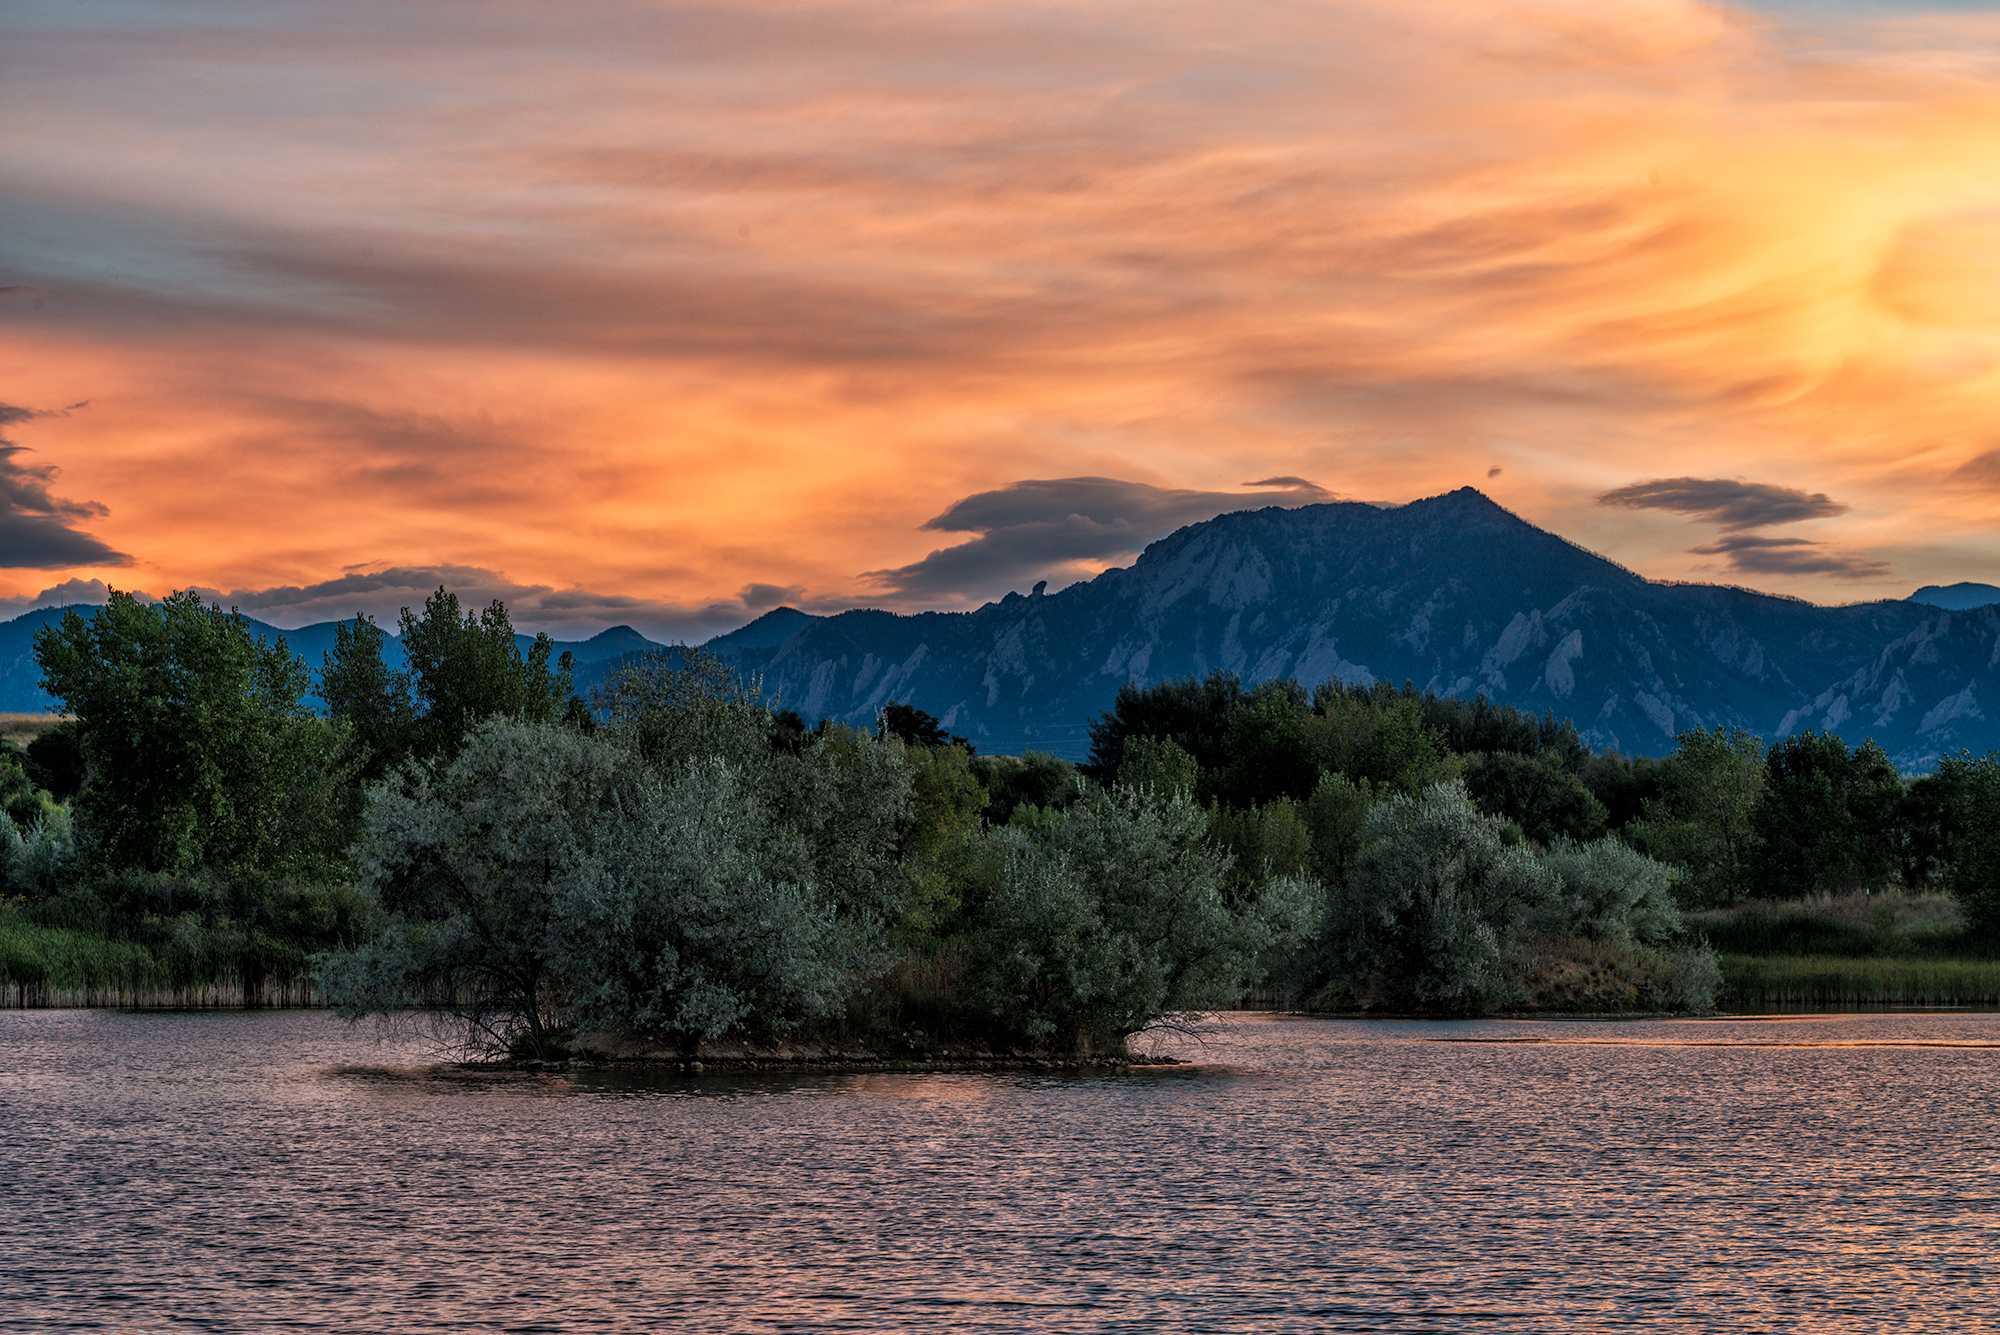 Flatiron-Sawhill Sunset. Sawhill Ponds, Colorado, 2015